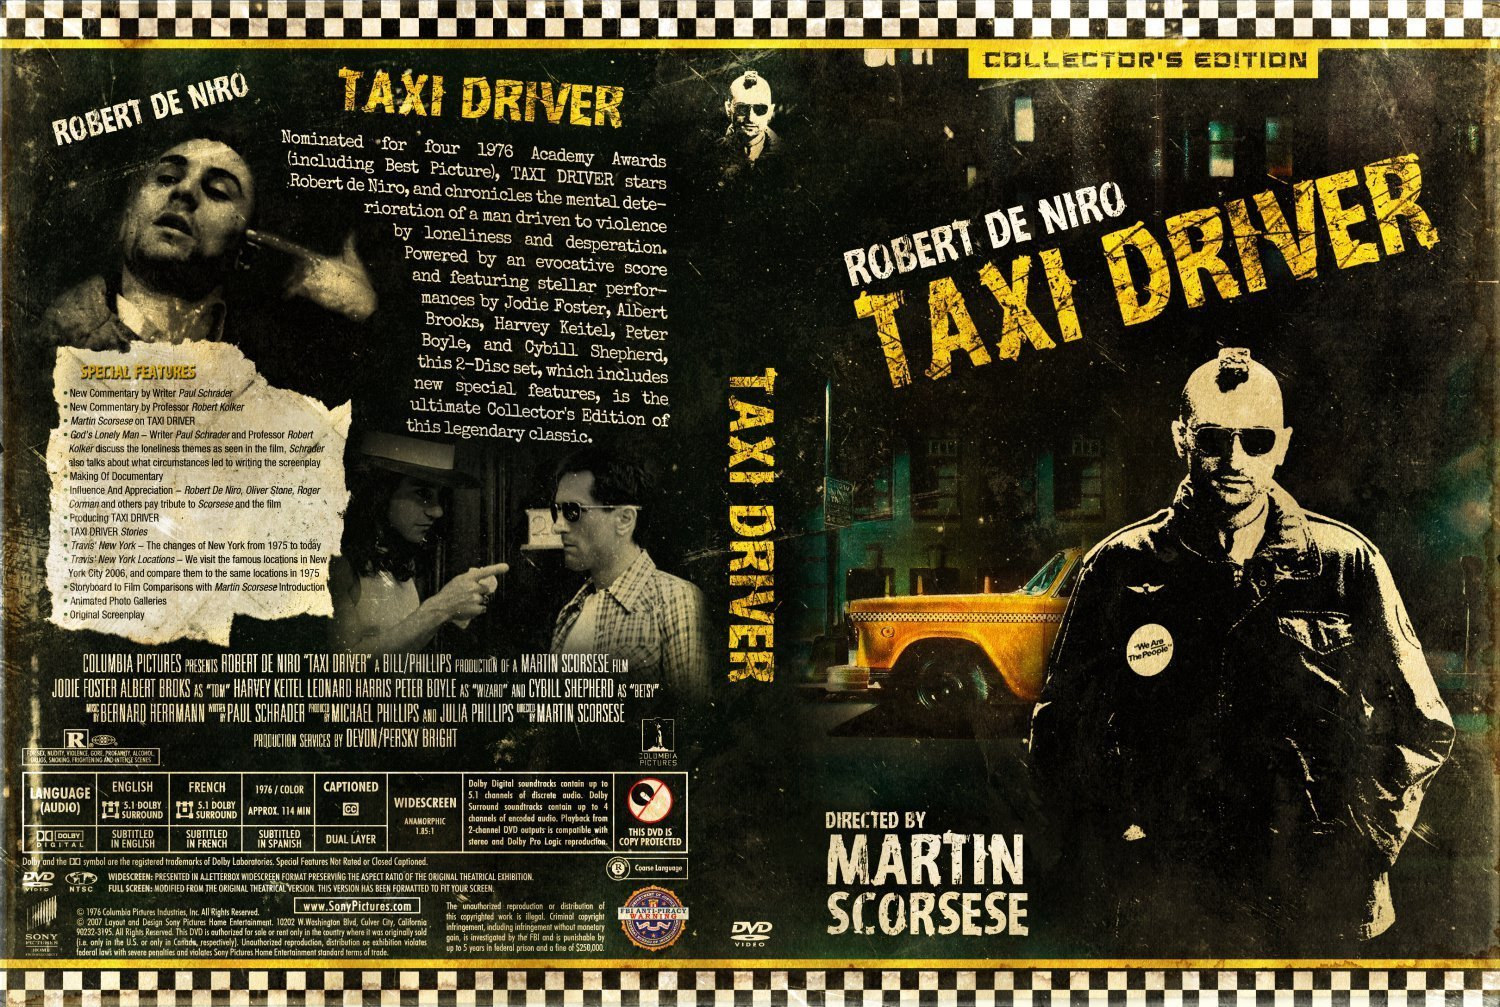 taxi driver dvd covers and labels